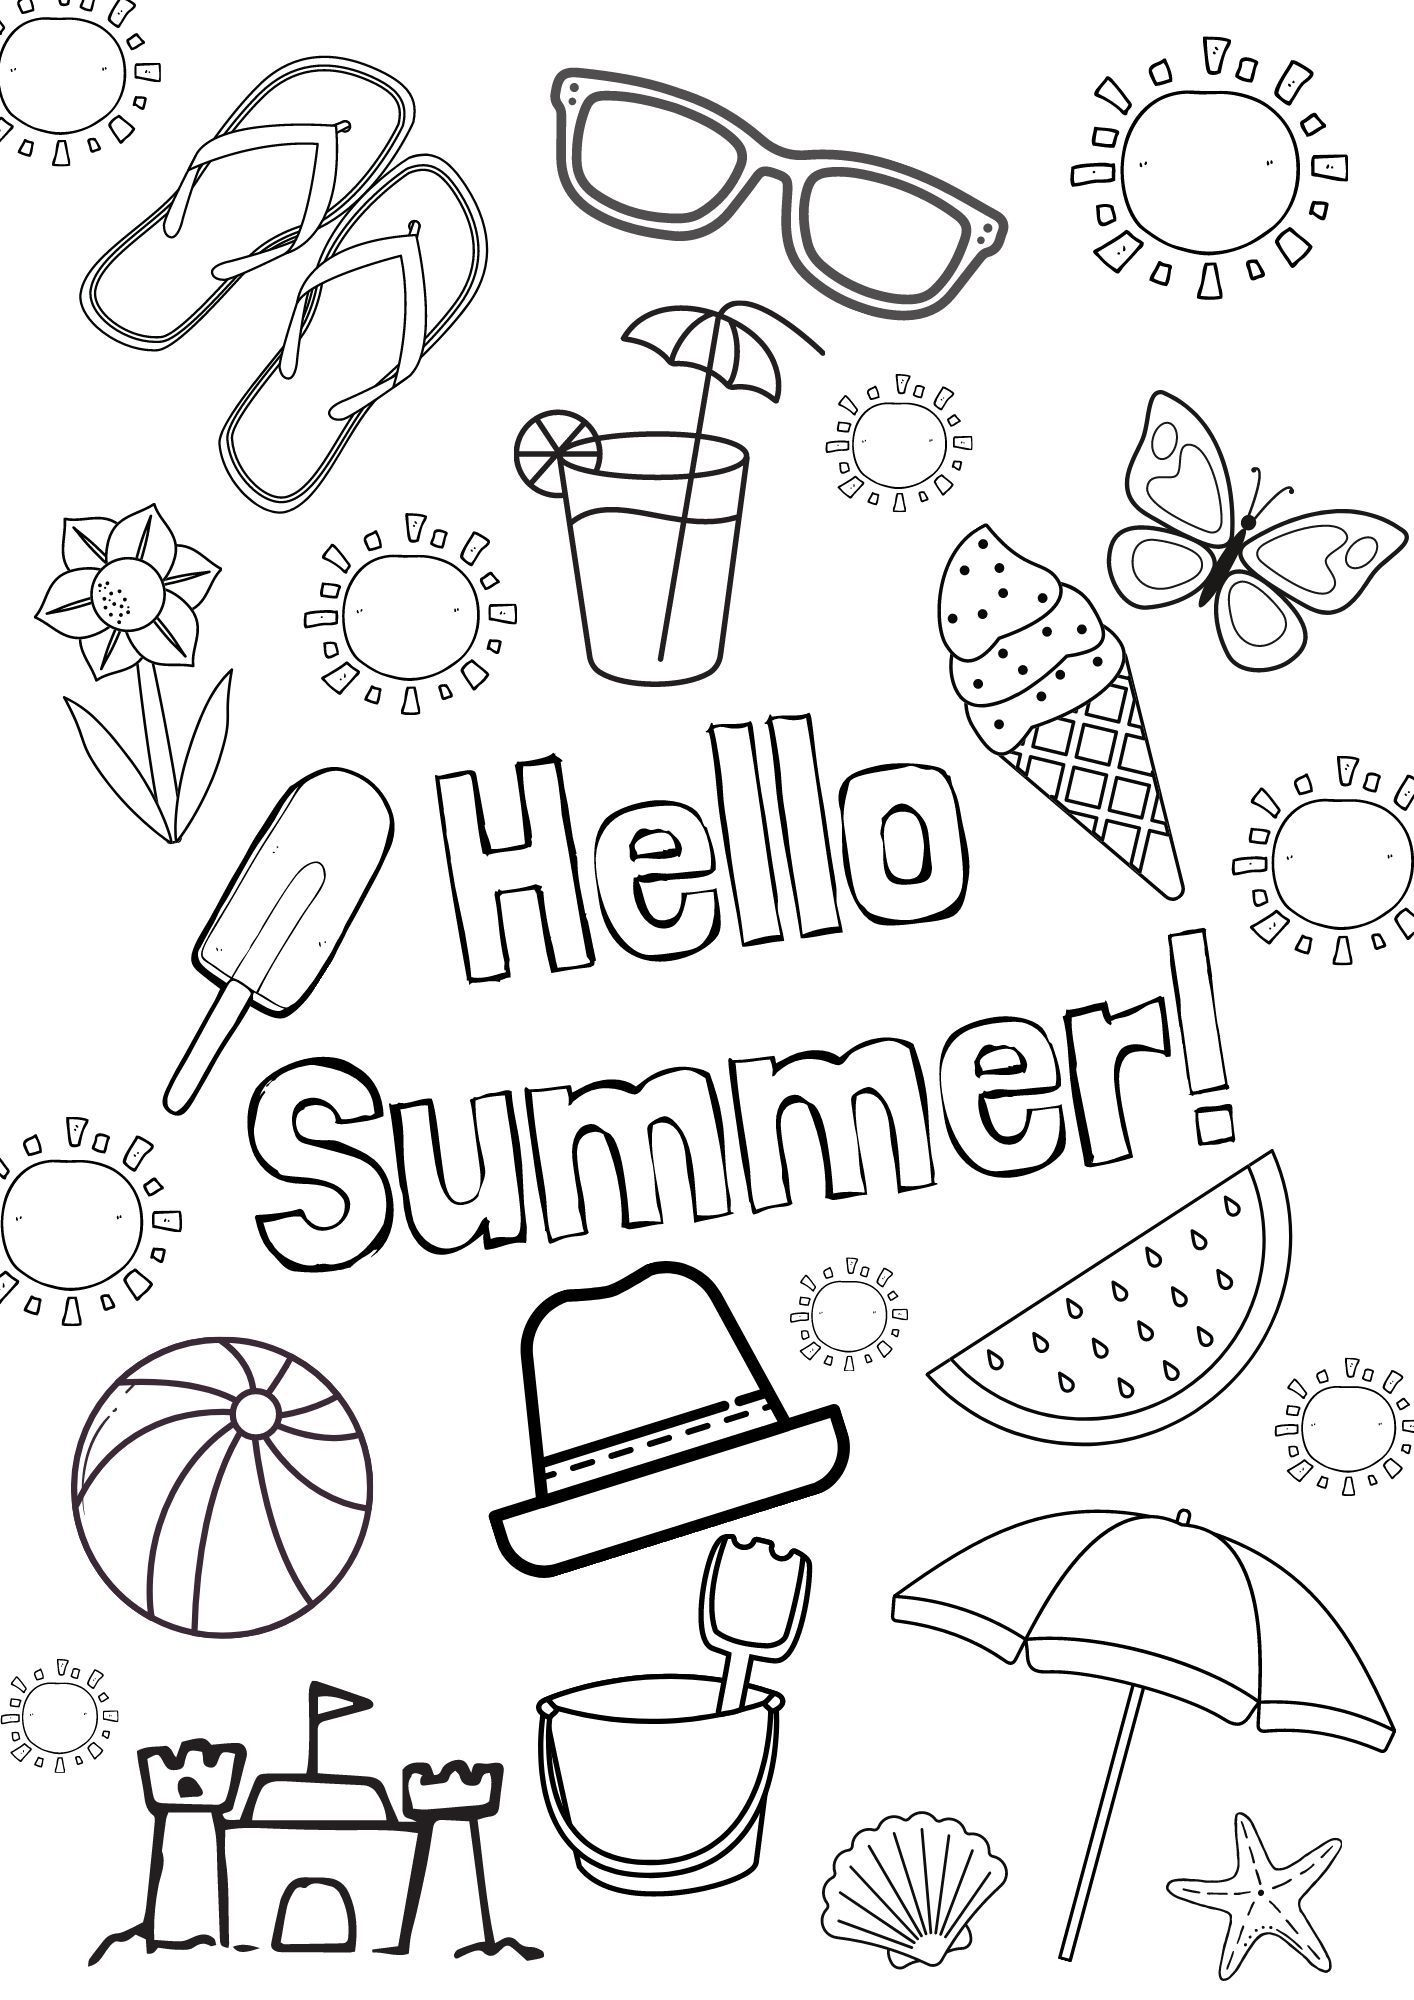 Free Summer Colouring Pages Printable Colouring Sheets Summer Fun Things To Do With Kids Printable Coloring Pages Free Coloring Pages Summer Coloring Sheets